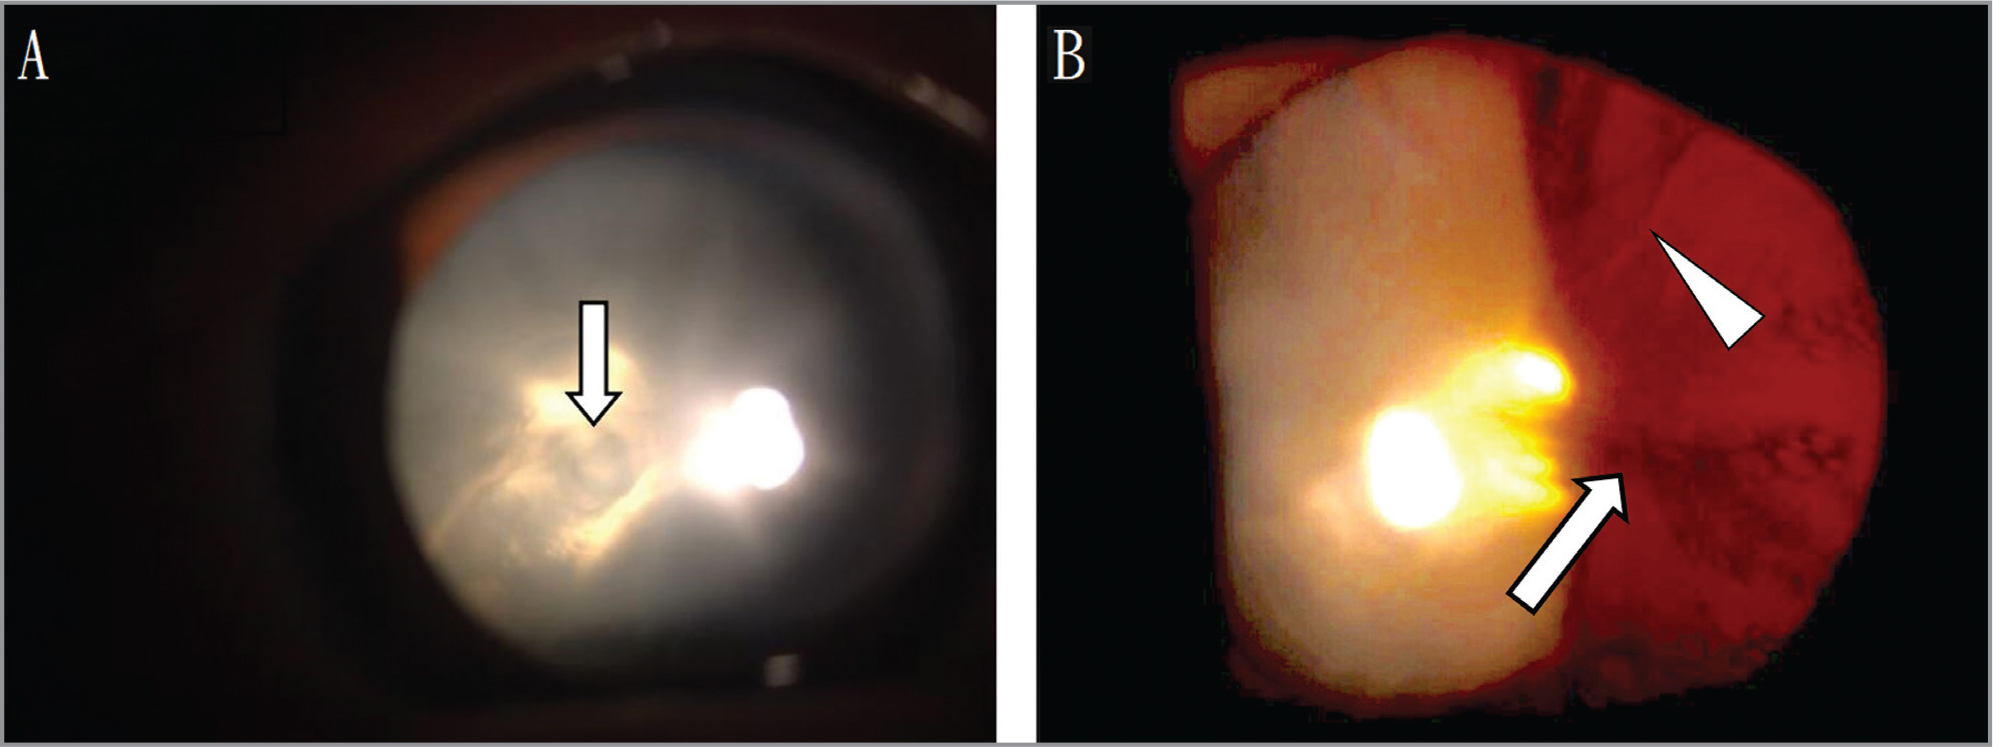 External photography and retro-illumination image of the right eye at the initial visit. (A) The punched-out cataract (arrow). (B) The tear in the posterior capsule (arrowhead) and cataract (arrow).